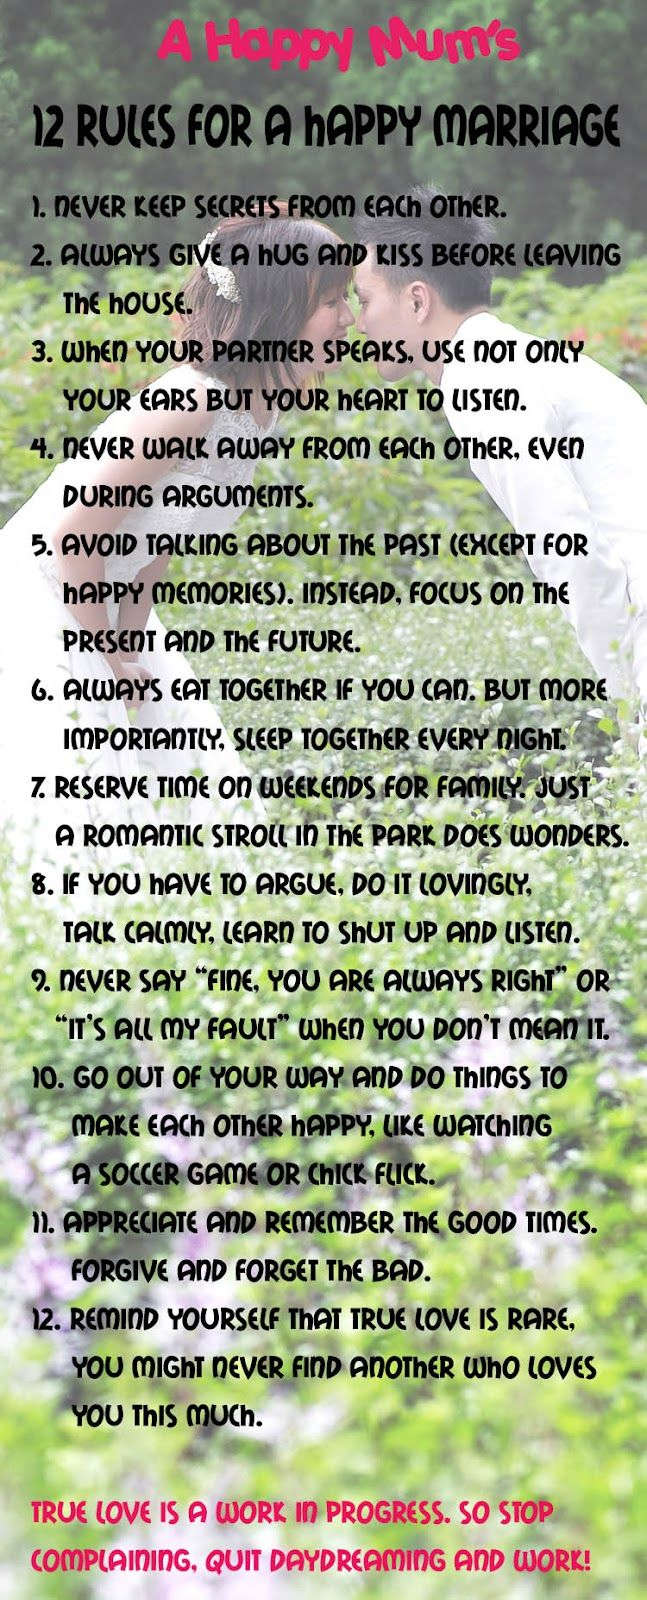 12 rules for a happy marriage...and just a happy relationship in general! I love it!!